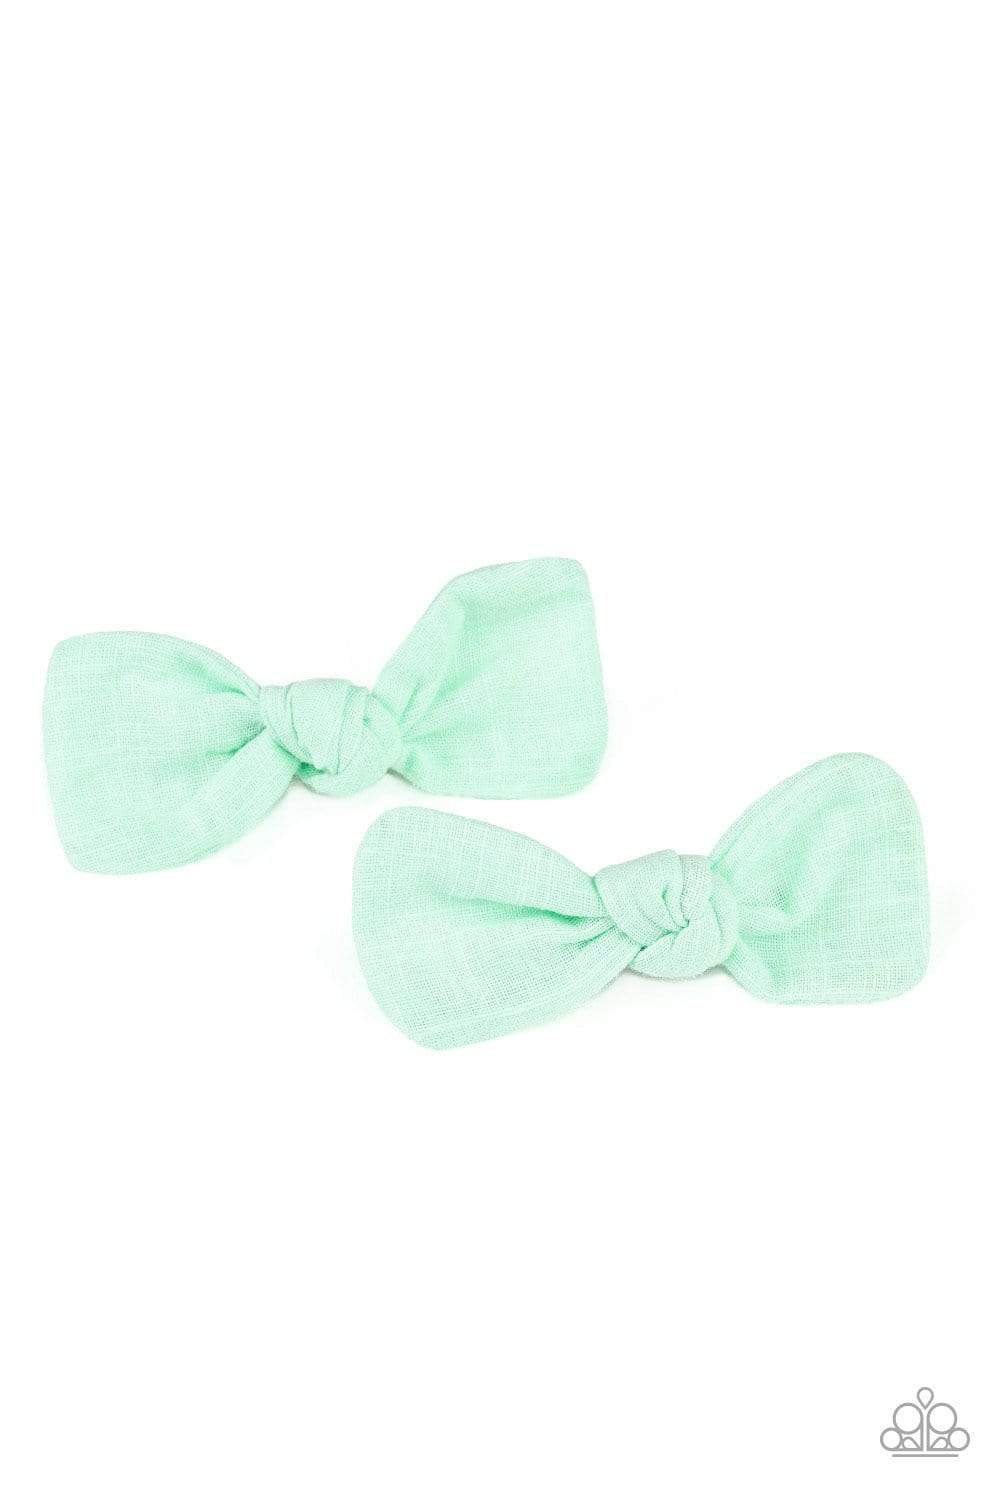 Paparazzi: Little BOW Peep - Green Hair Clips